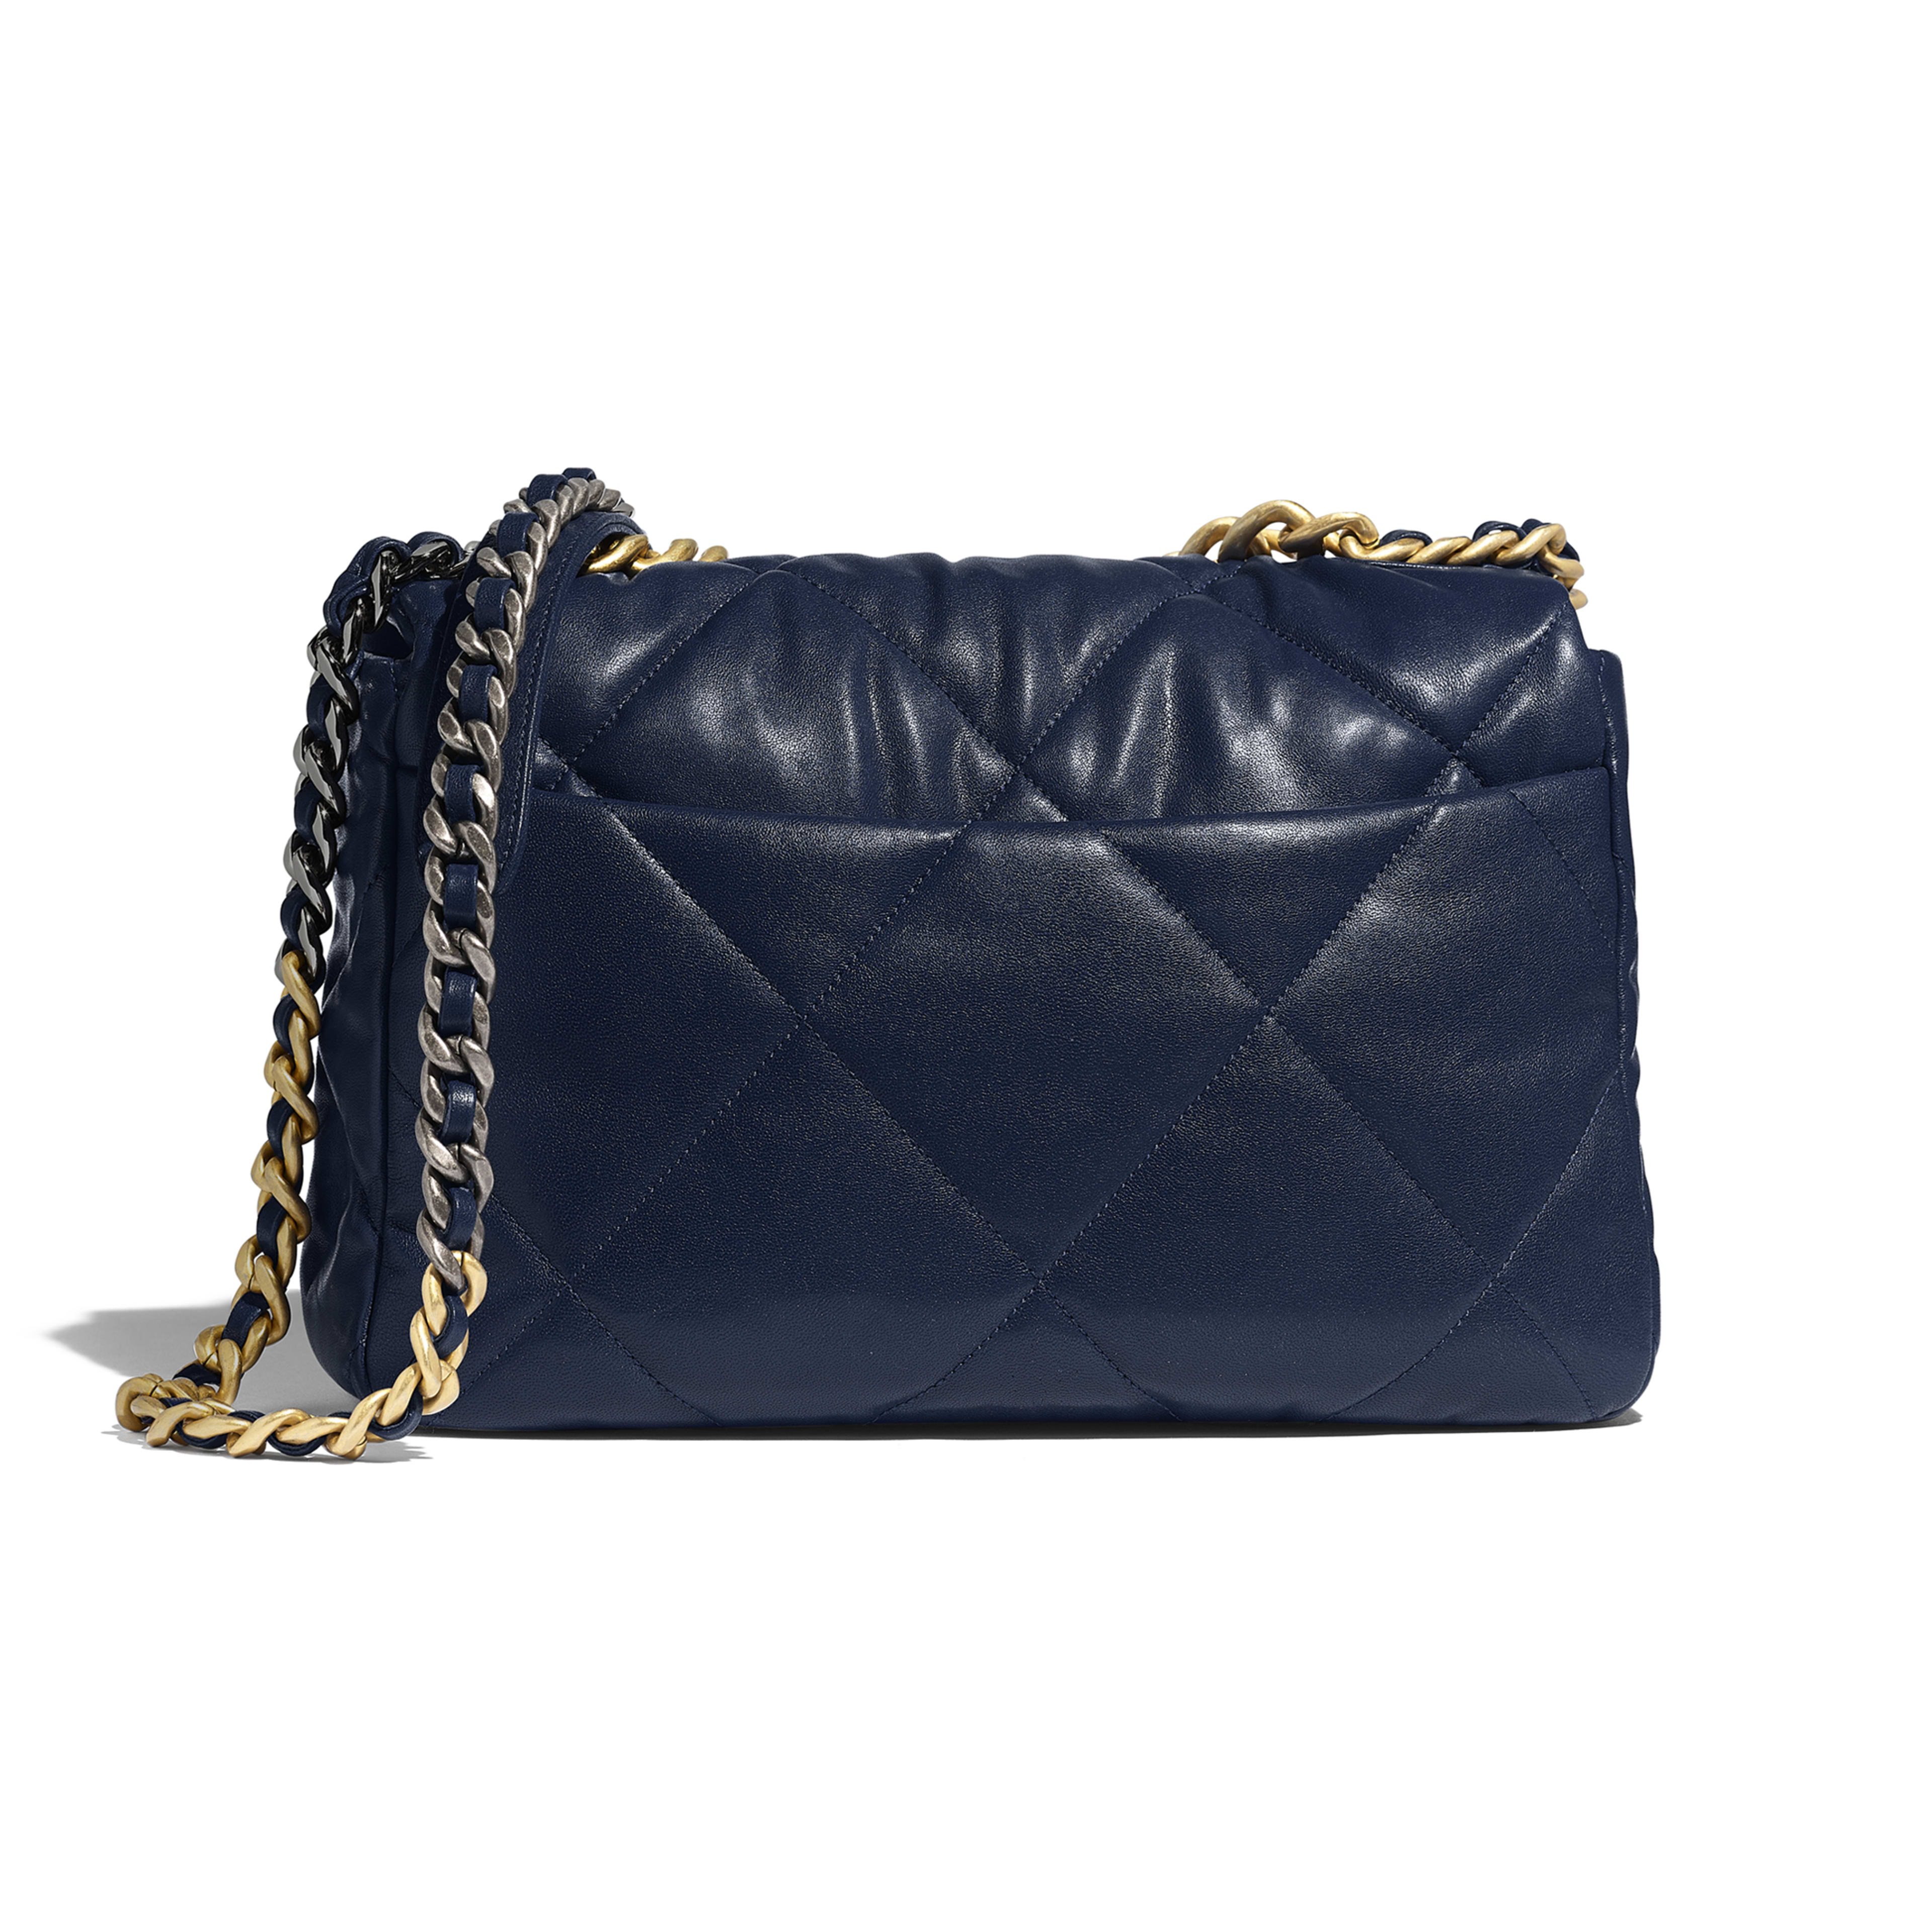 CHANEL 19 Large Flap Bag - Navy Blue - Lambskin, Gold-Tone, Silver-Tone & Ruthenium-Finish Metal - Alternative view - see full sized version